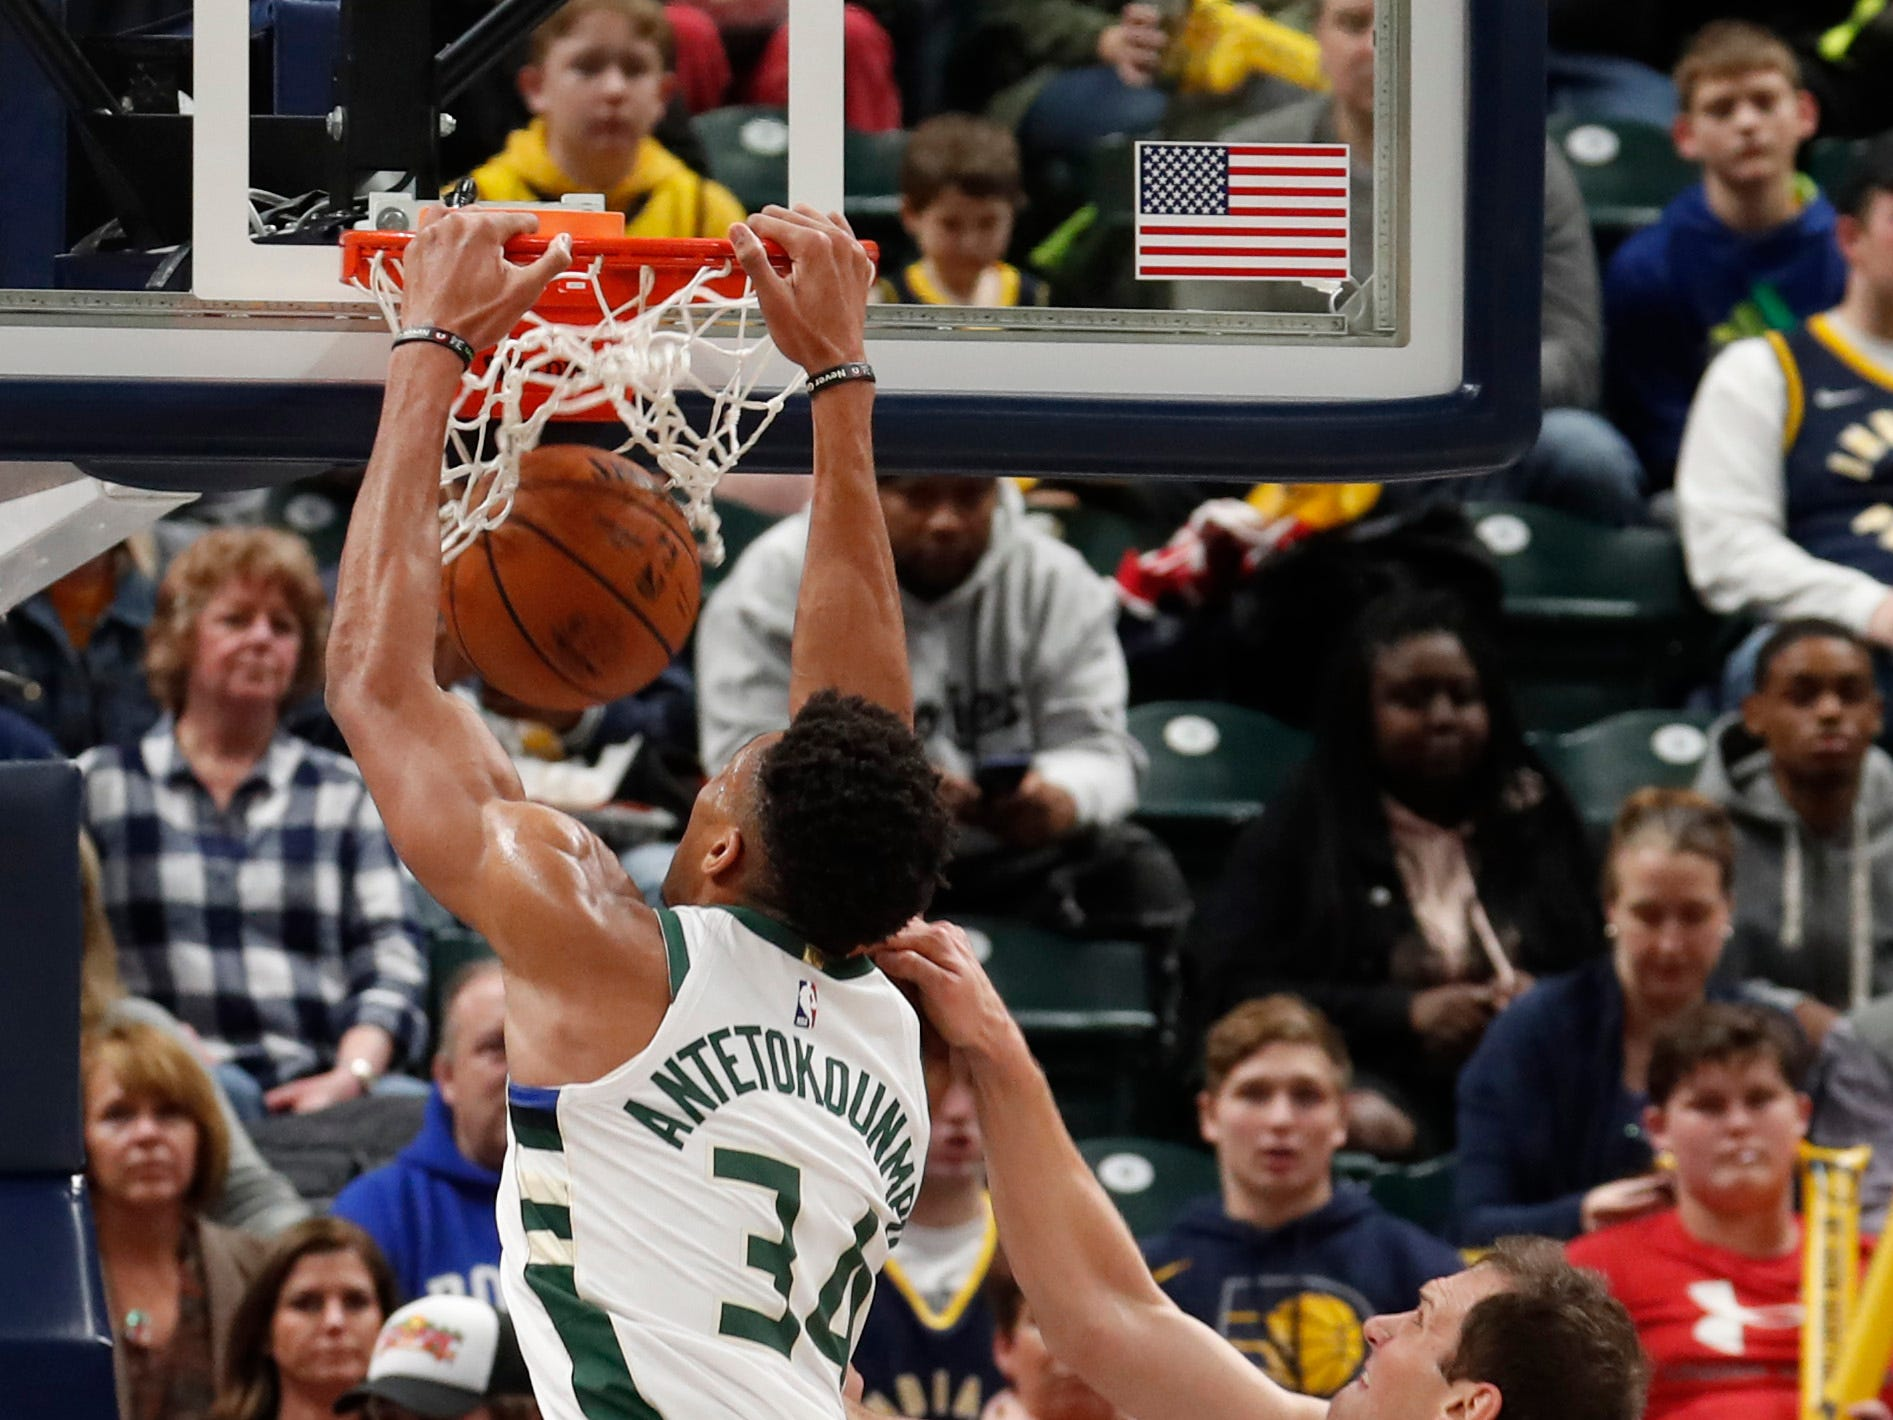 Bucks forward Giannis Antetokounmpo dunks against Pacers forward Bojan Bogdanovic during the first quarter Wednesday night.